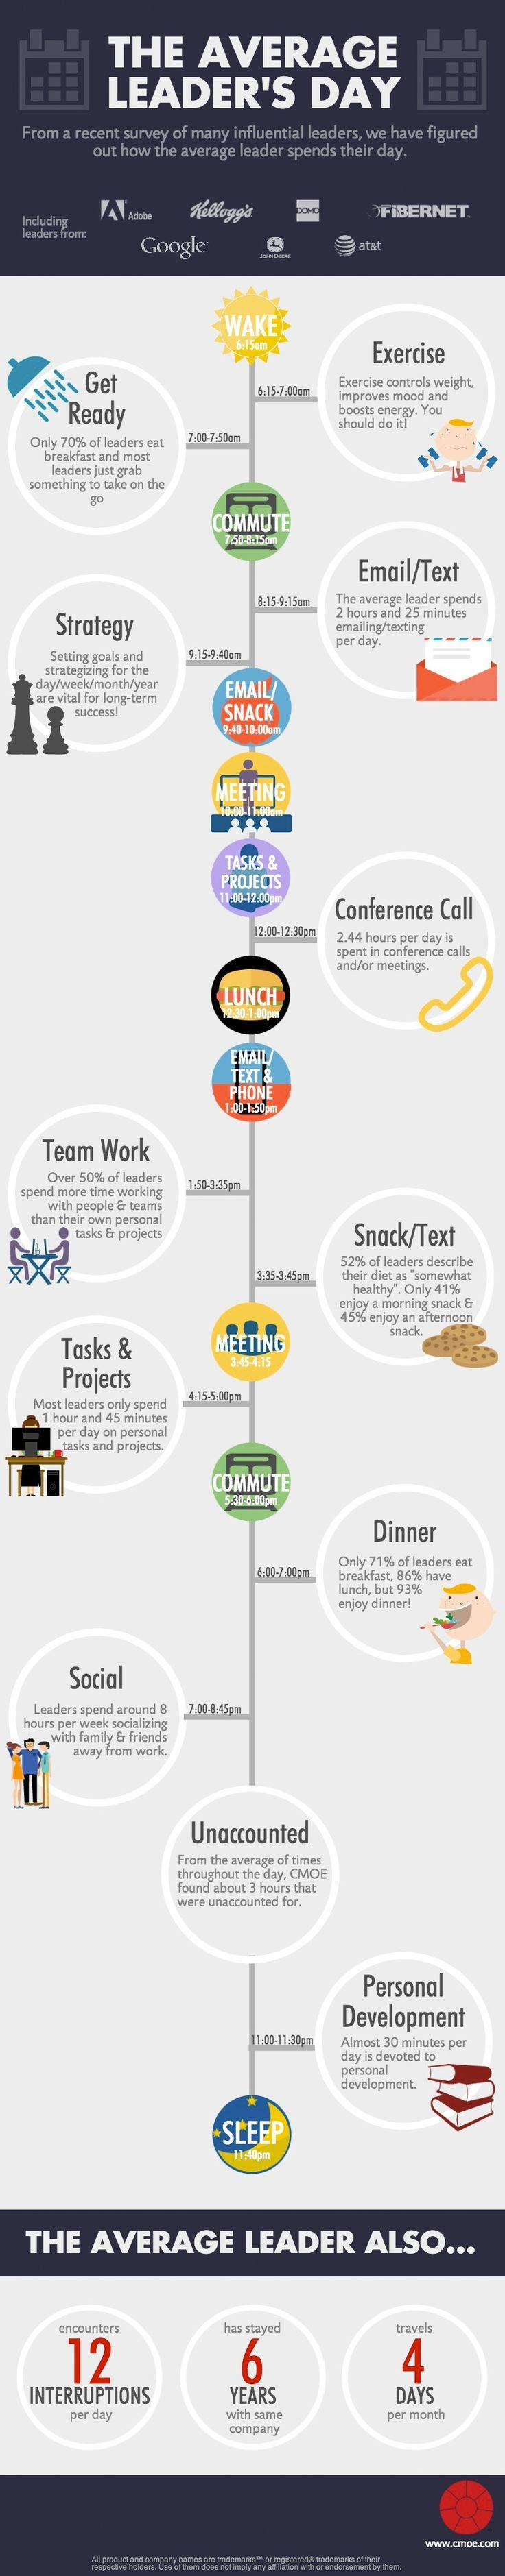 1000+ images about Leadership on Pinterest | Orchestra, A business ...